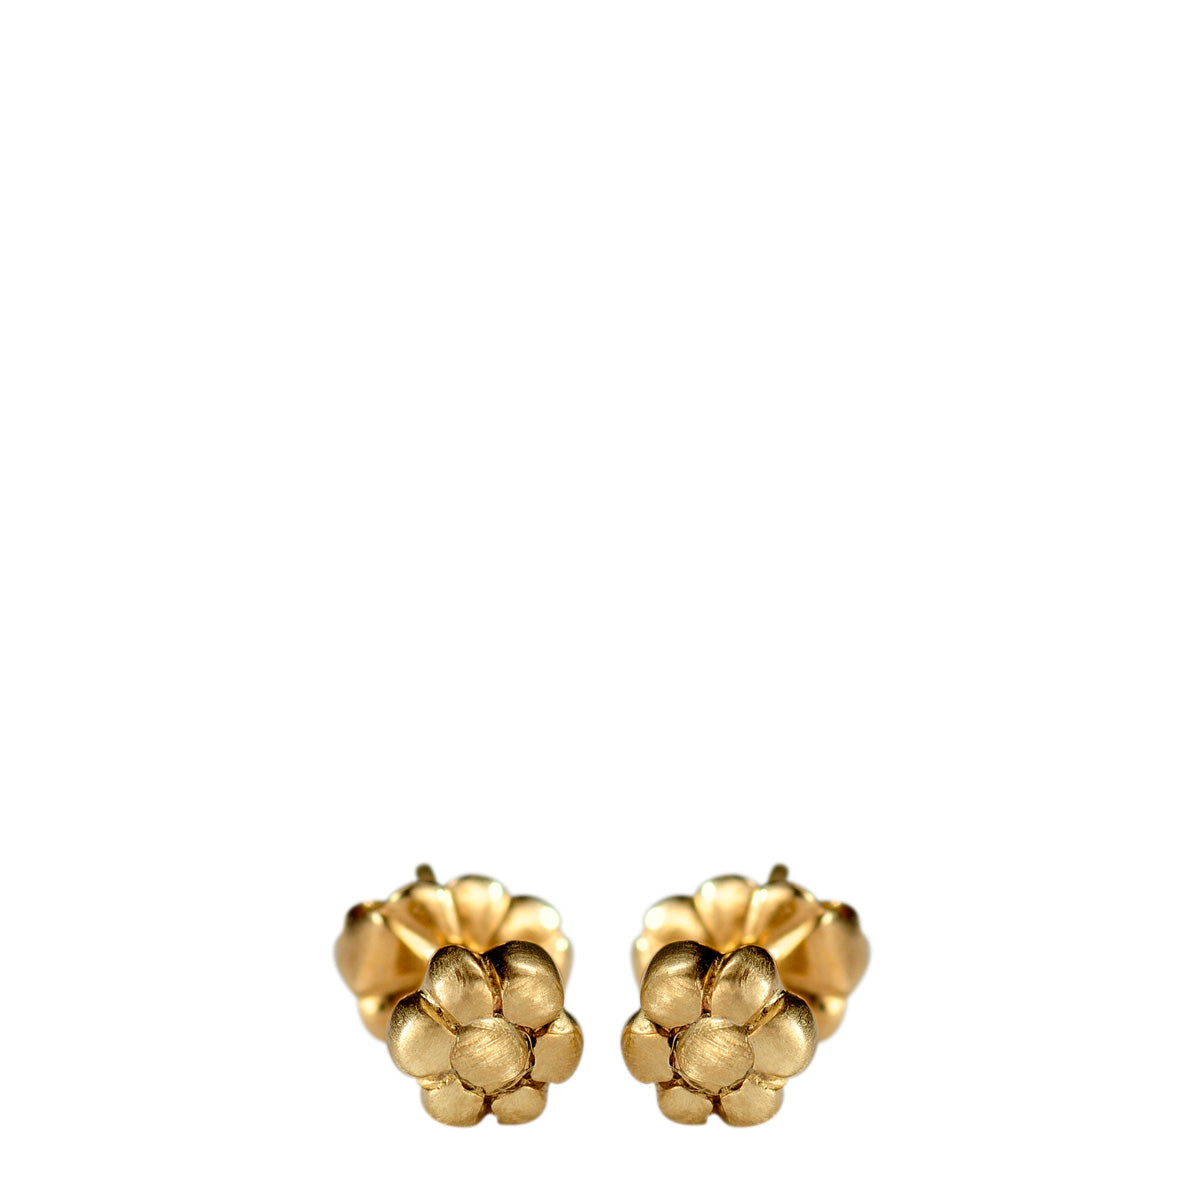 10K Gold Tiny Flower Stud Earrings